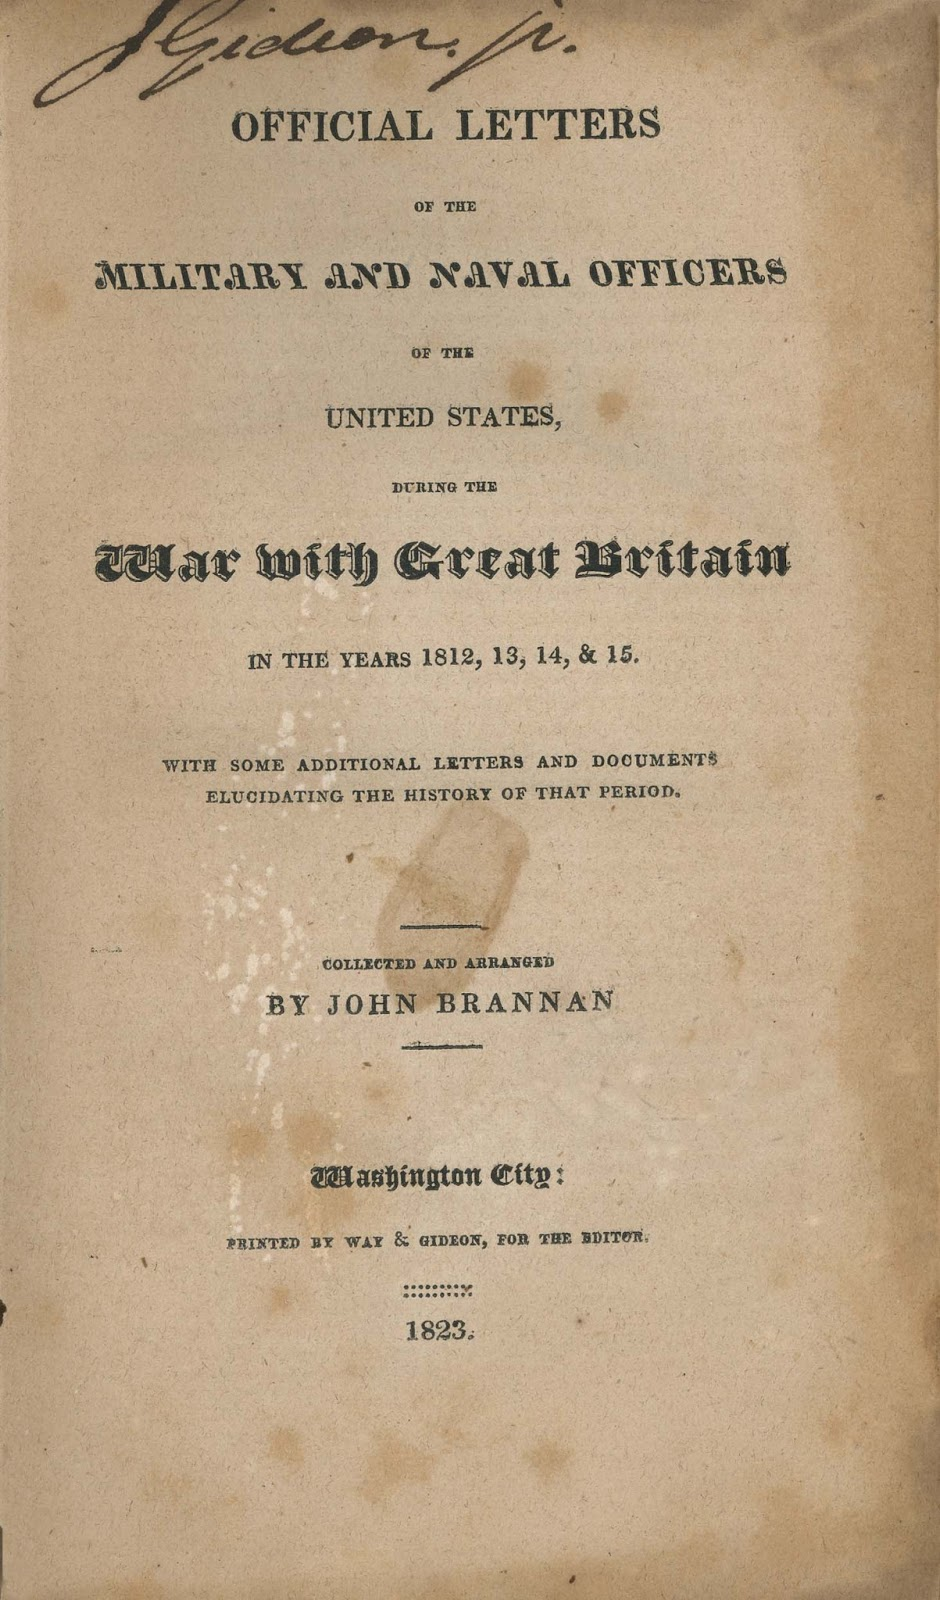 yesterday s papers the war of 1812 and its publications picture 54 title page of a collection of official documents relative to the military and naval operations of the war of 1812 printed in washington d c in 1823